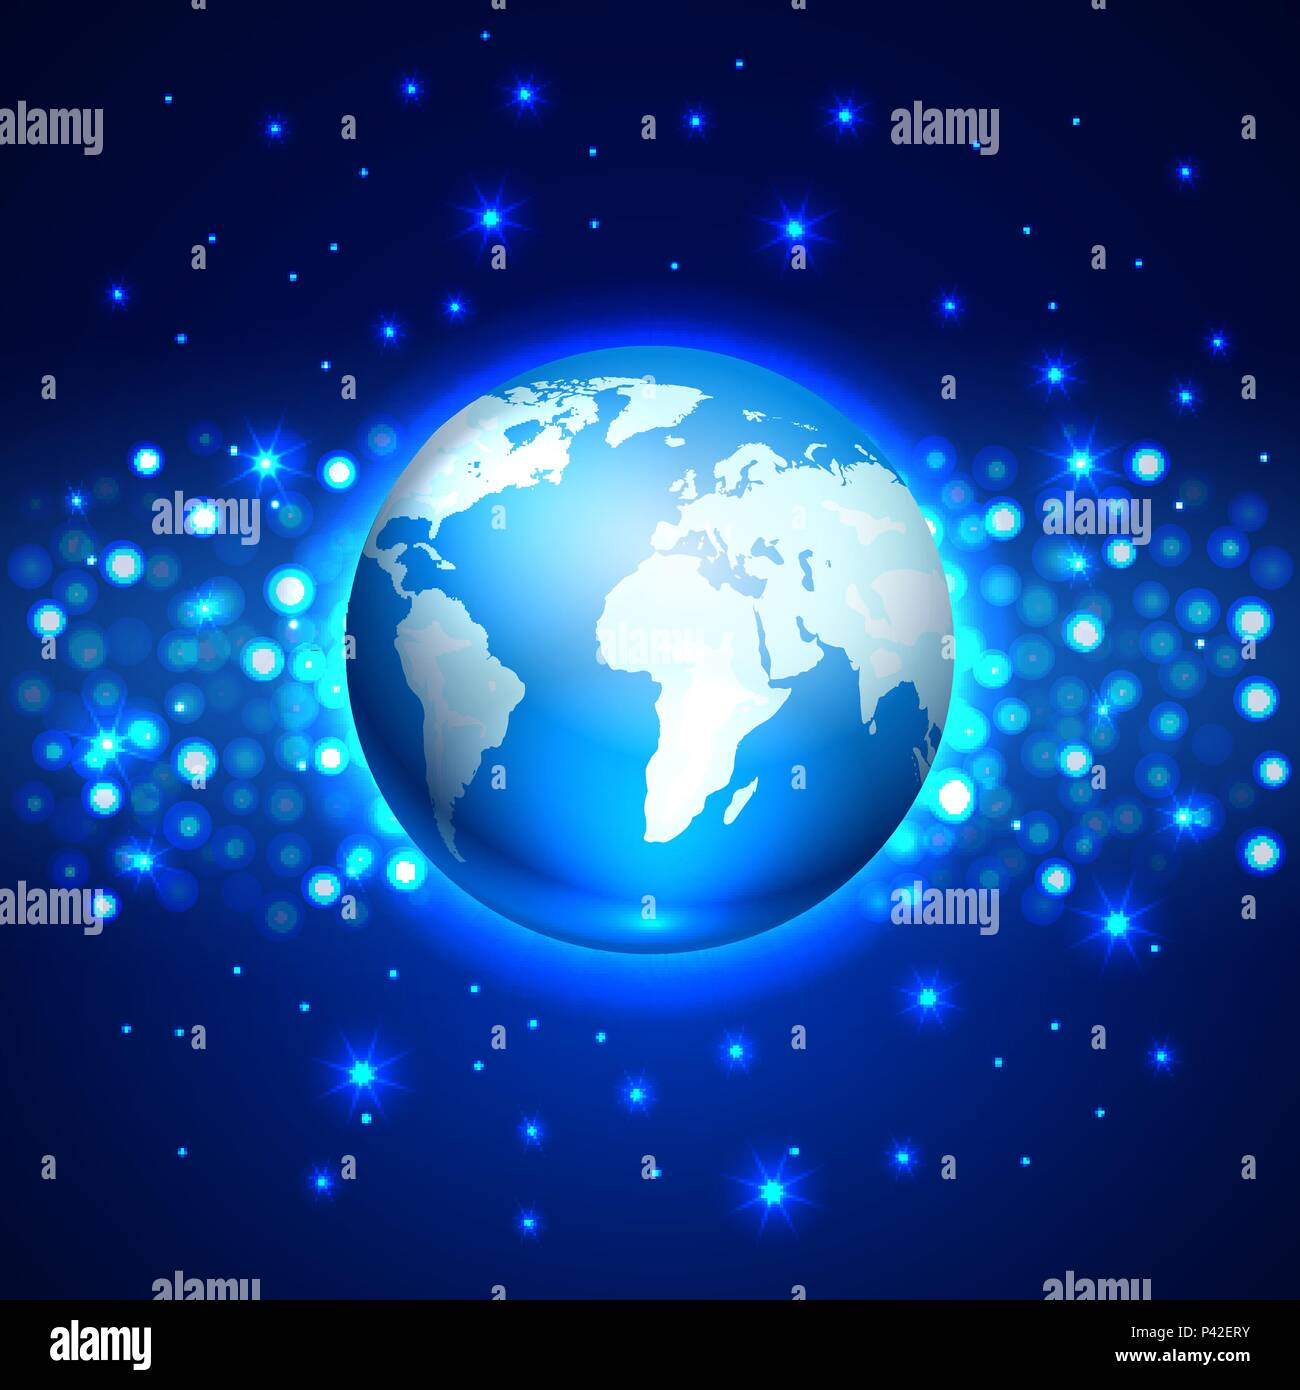 Planet globe Earth on the blue space background, vector illustration - Stock Vector